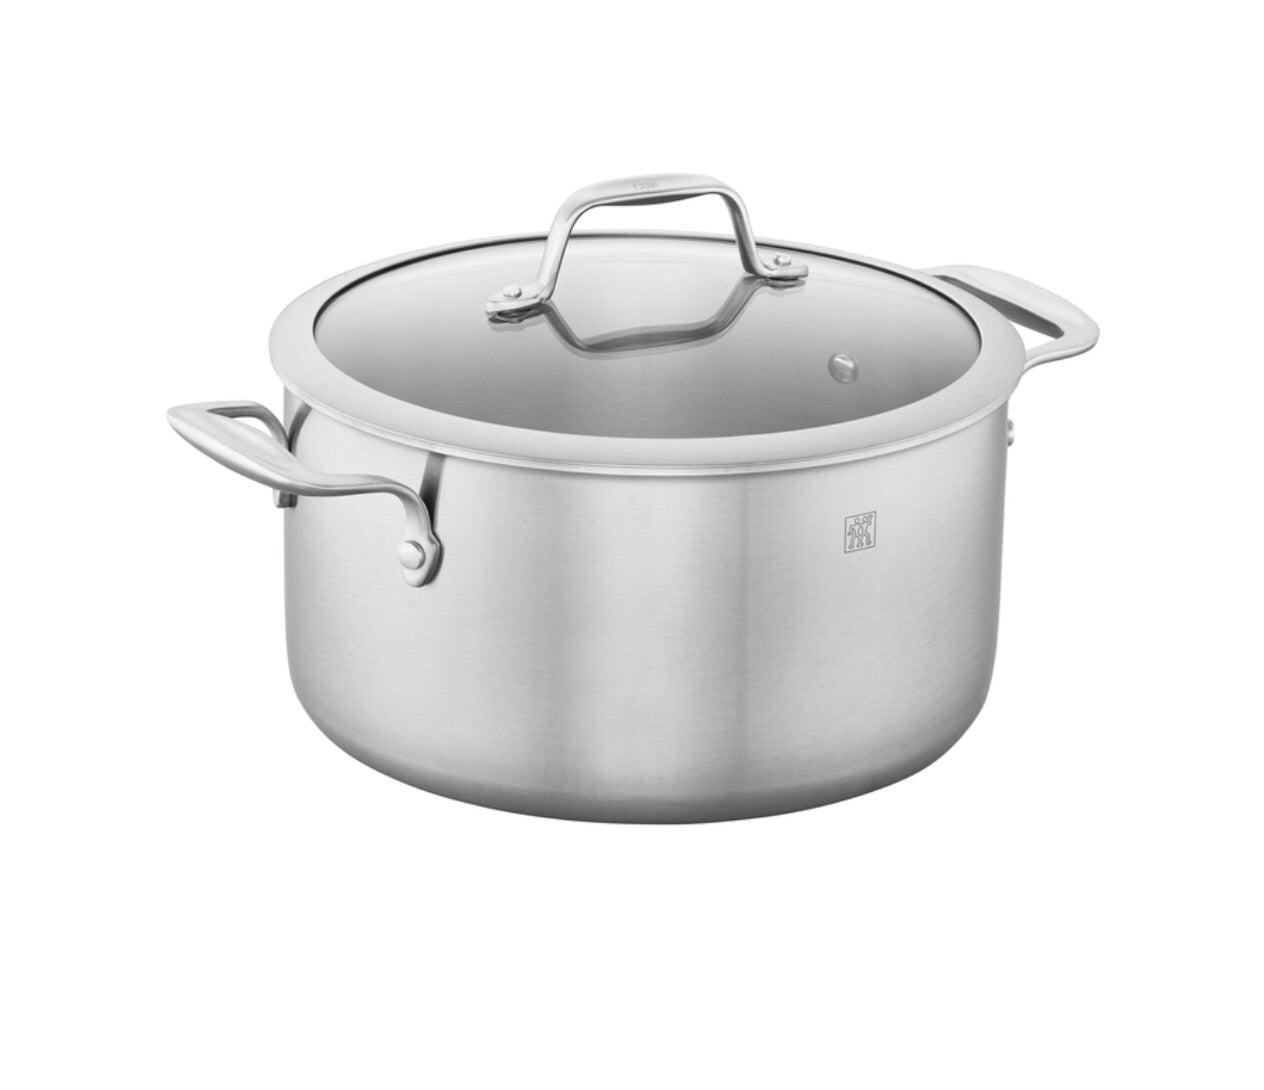 J A Henckels Spirit Stainless Steel Dutch Oven 6qt. 6566855D